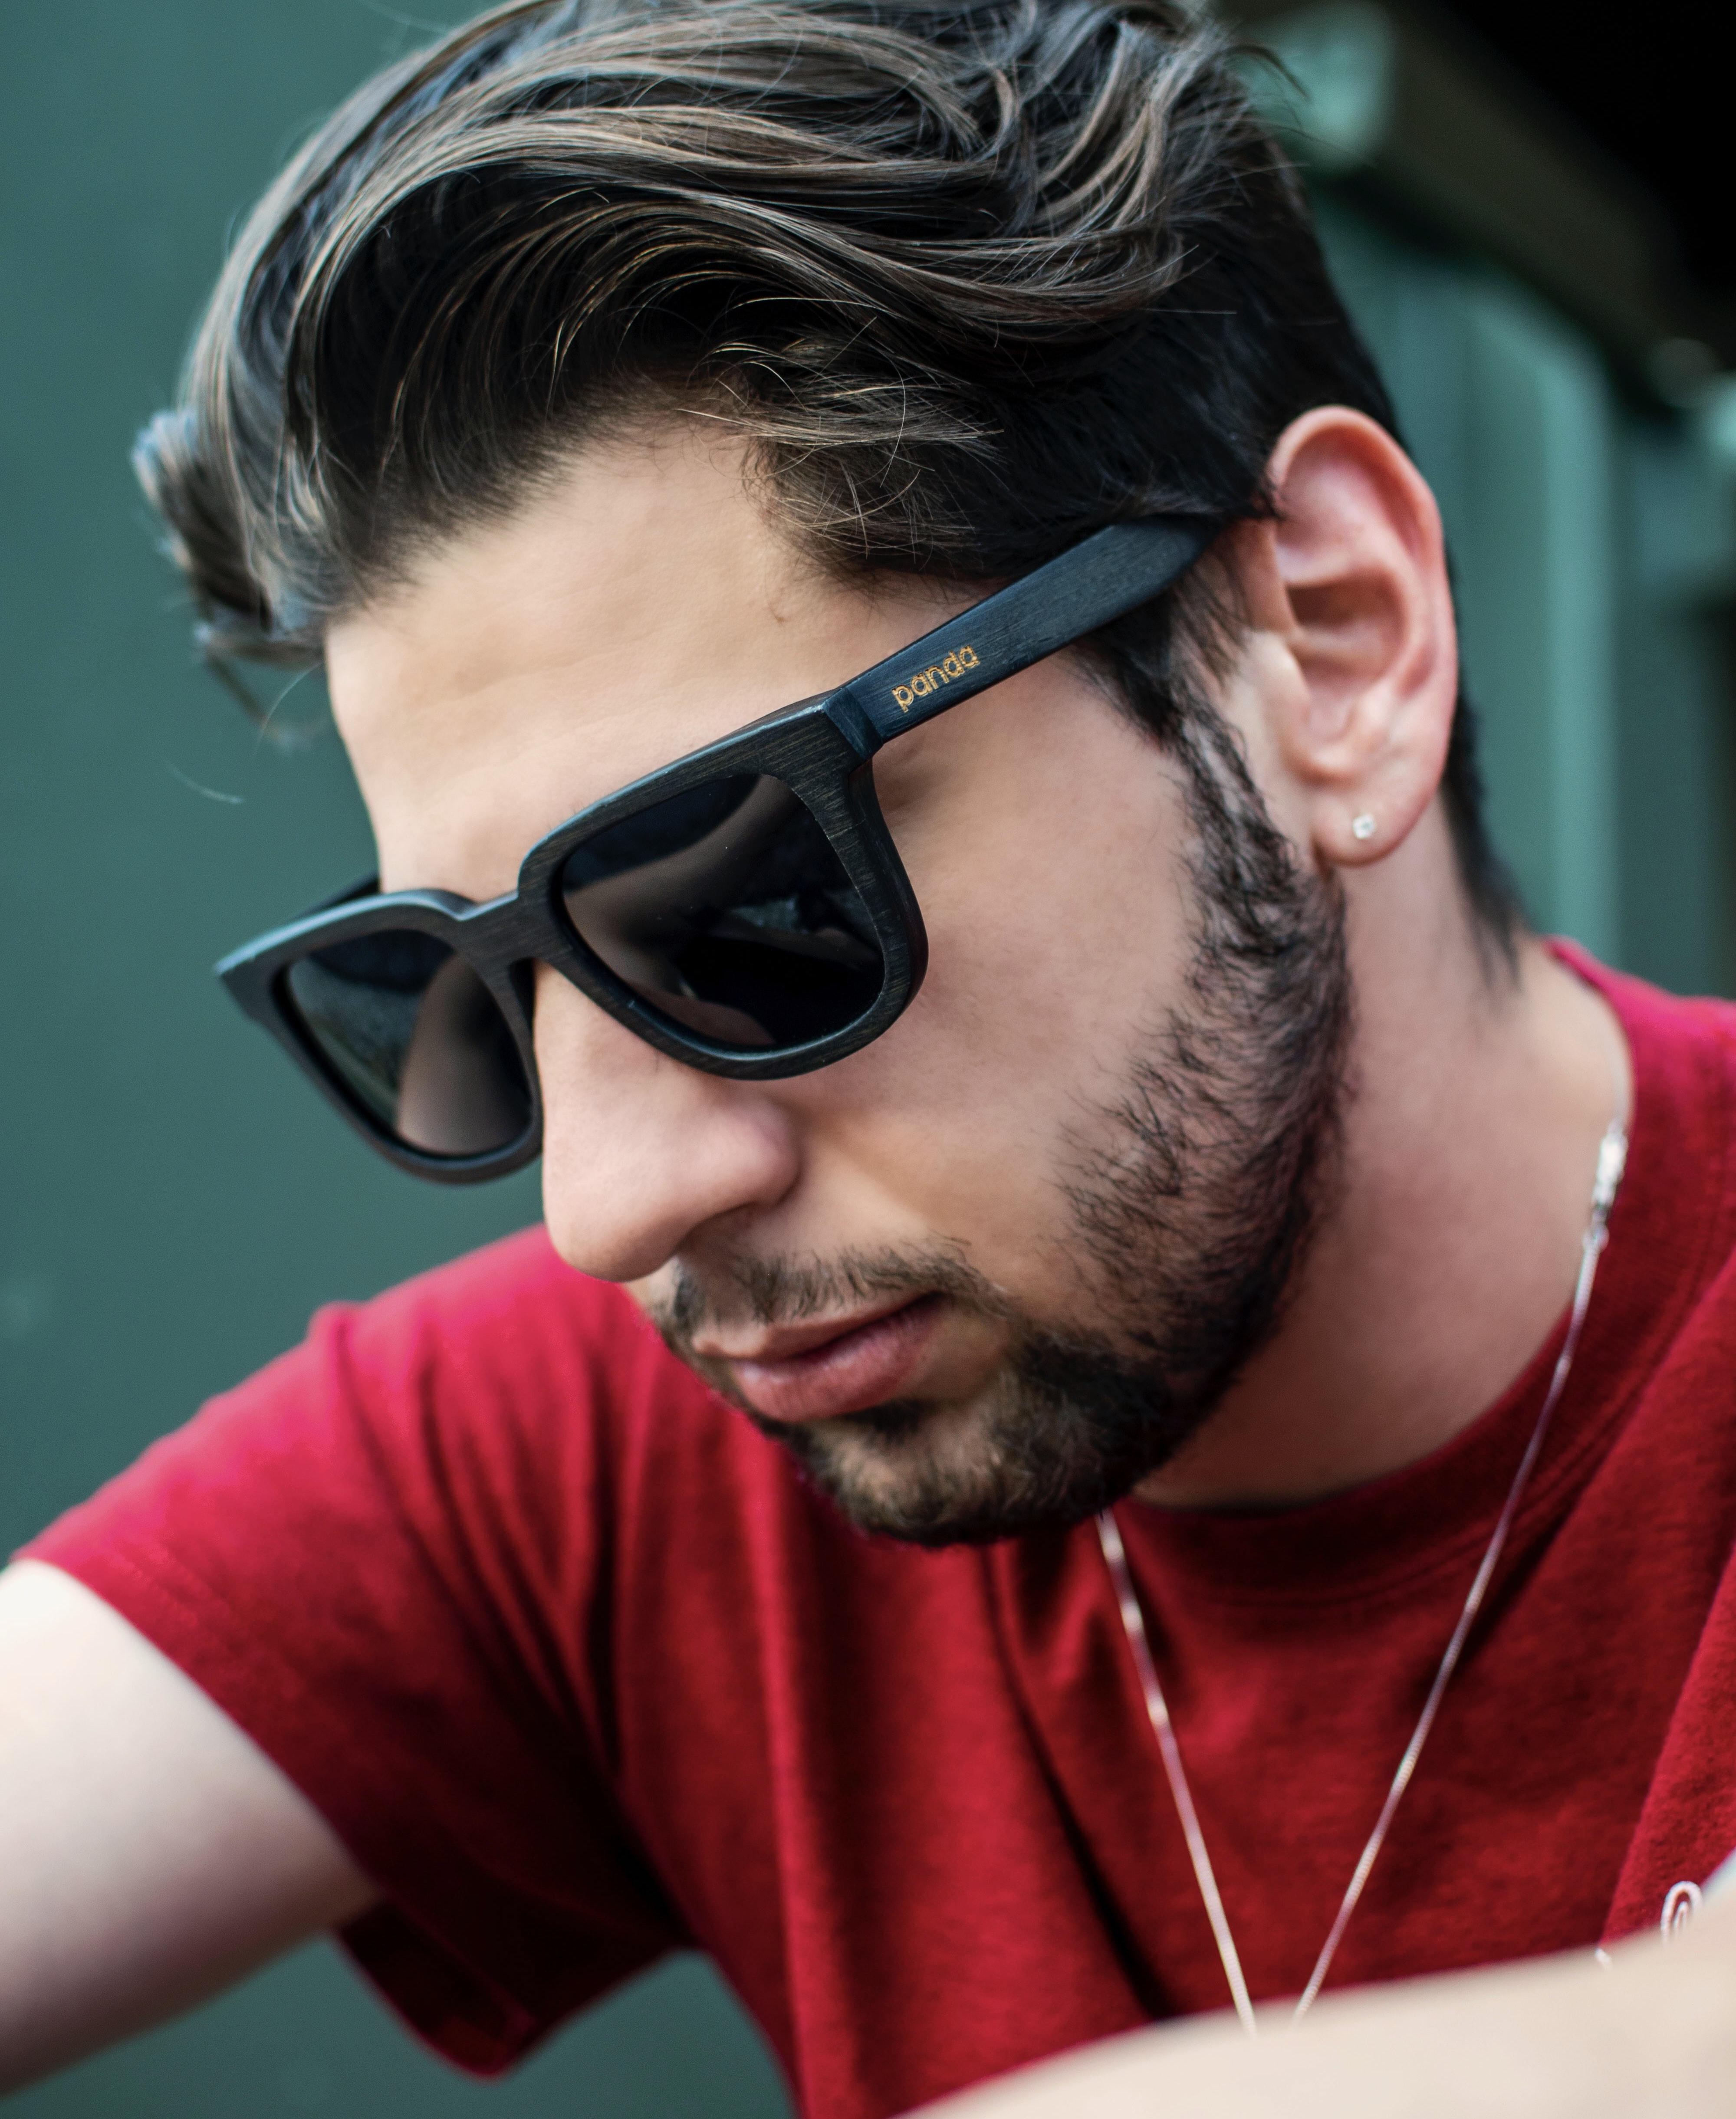 man wearing black sunglasses and red shirt